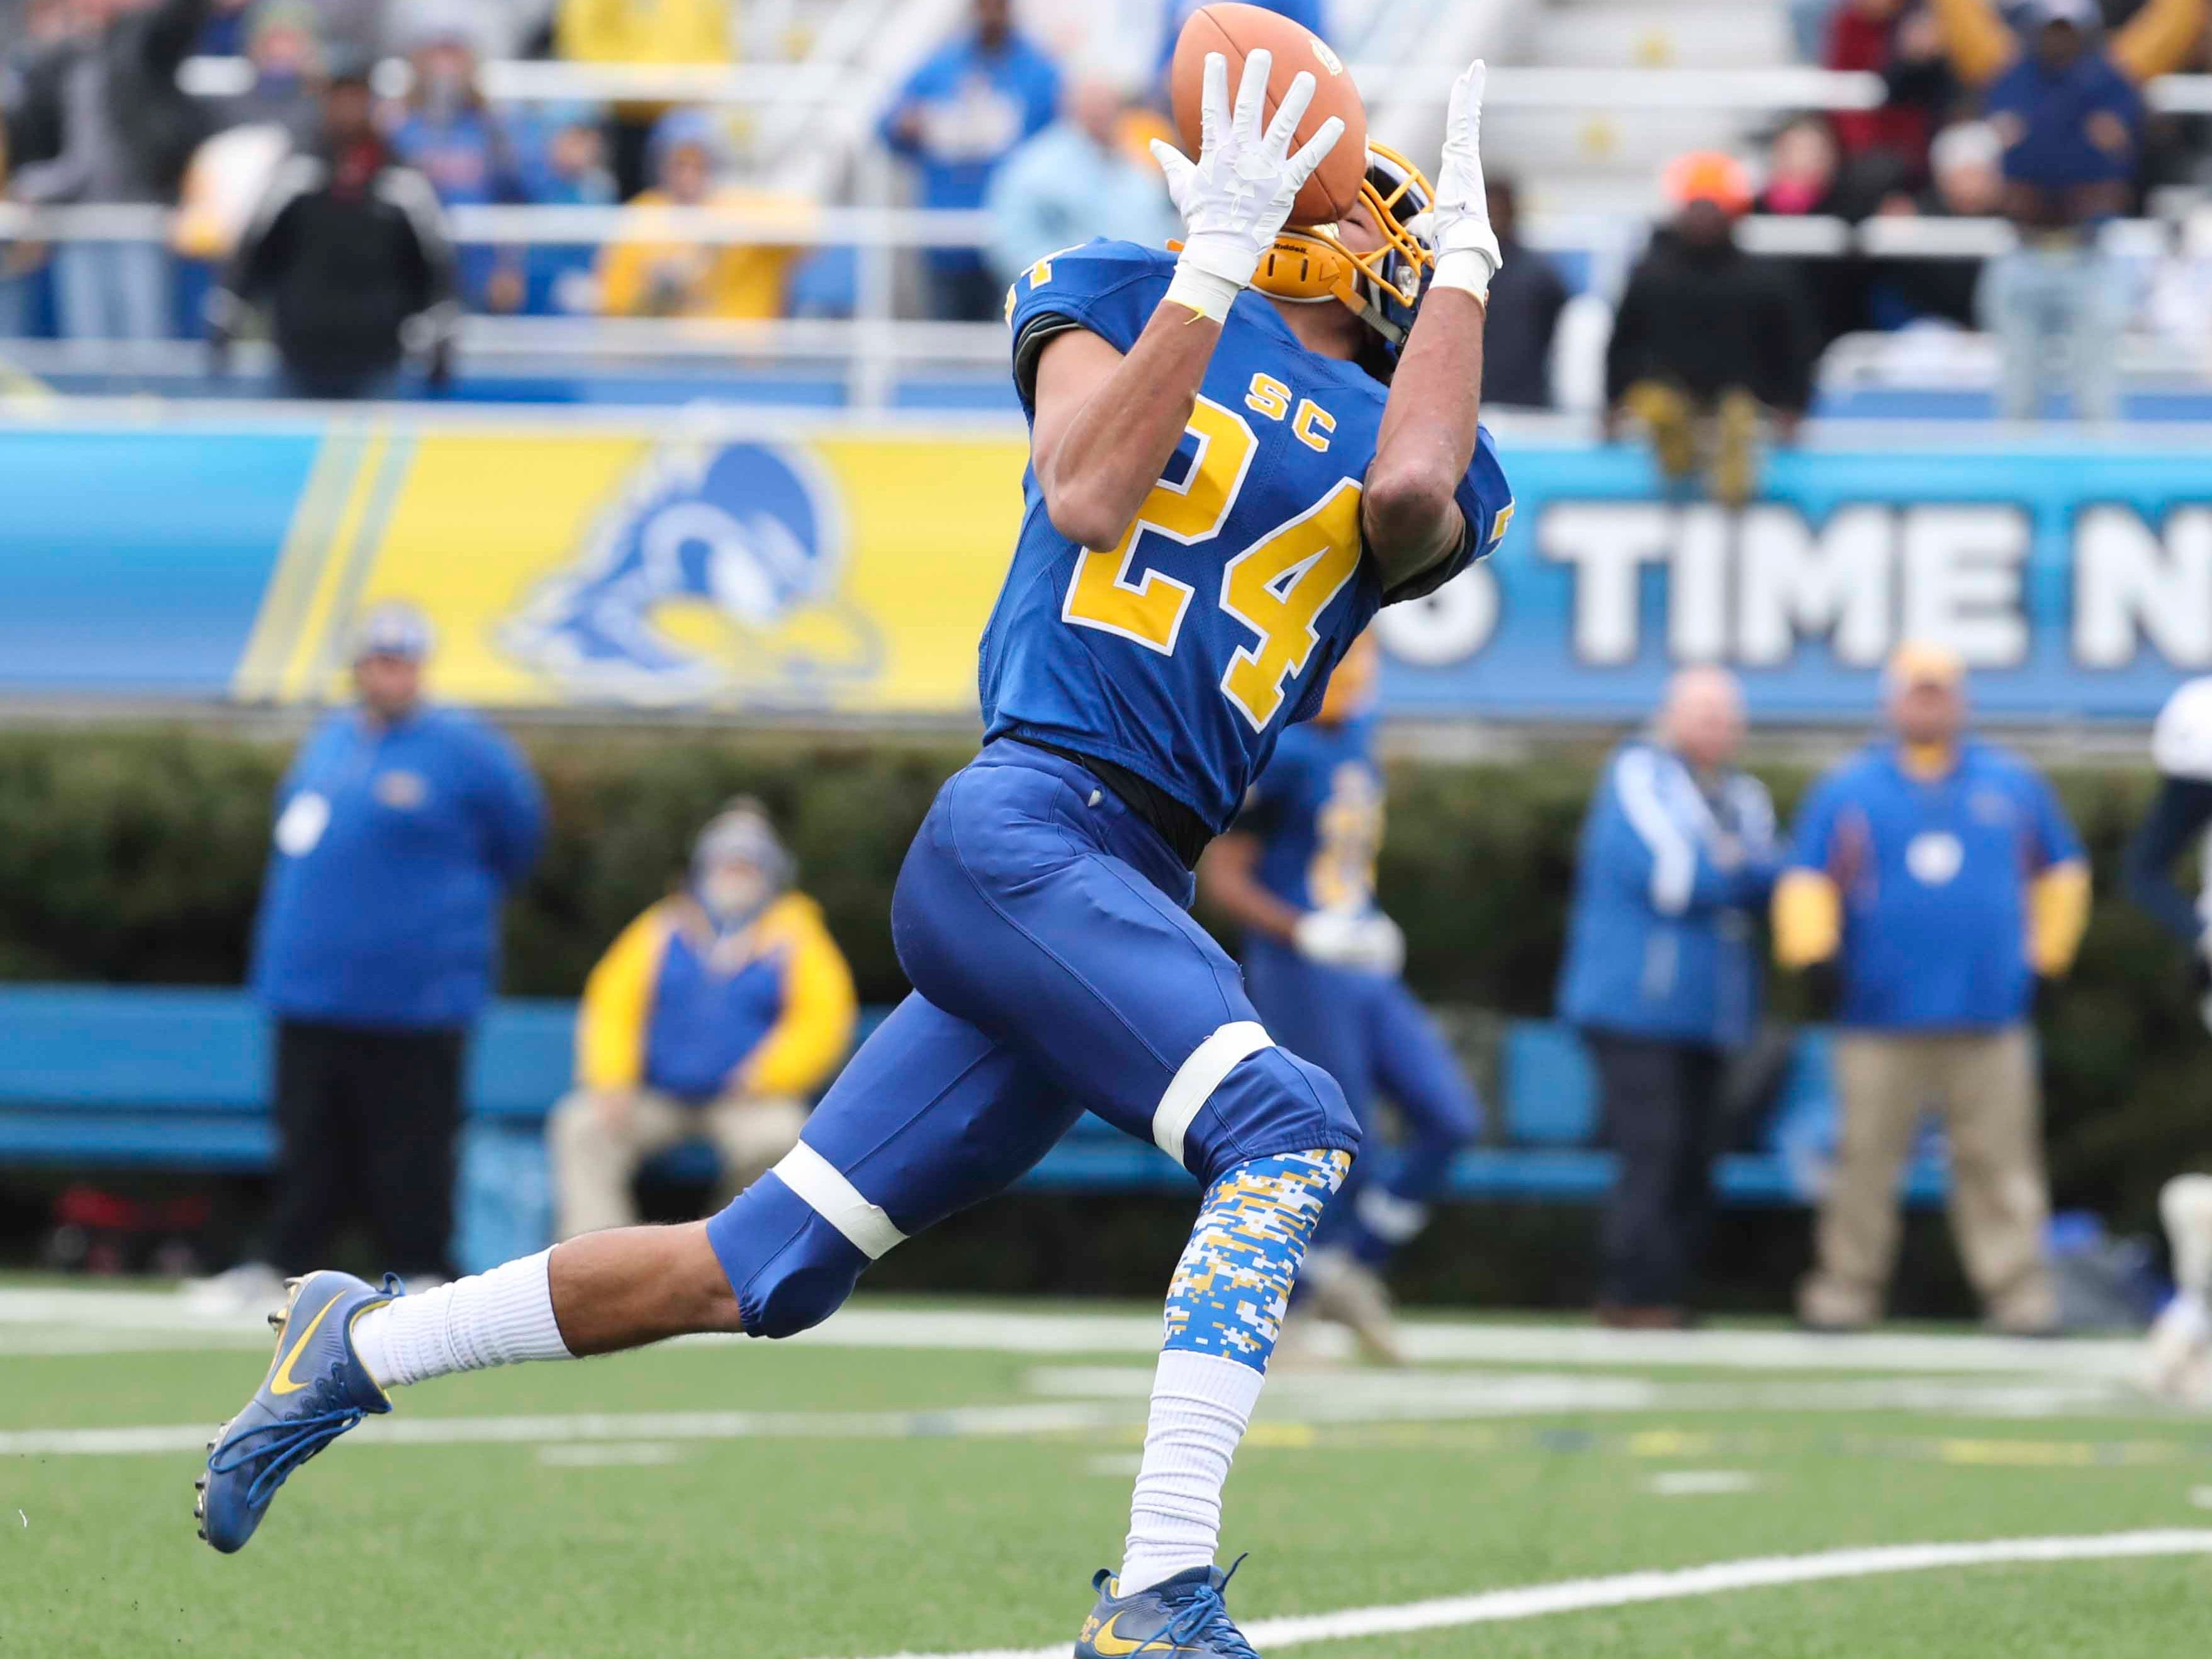 Sussex Central's Isaiah Barnes catches a pass before coasting for a touchdown in the first quarter in the DIAA Division I state tournament championship game at Delaware Stadium Saturday.